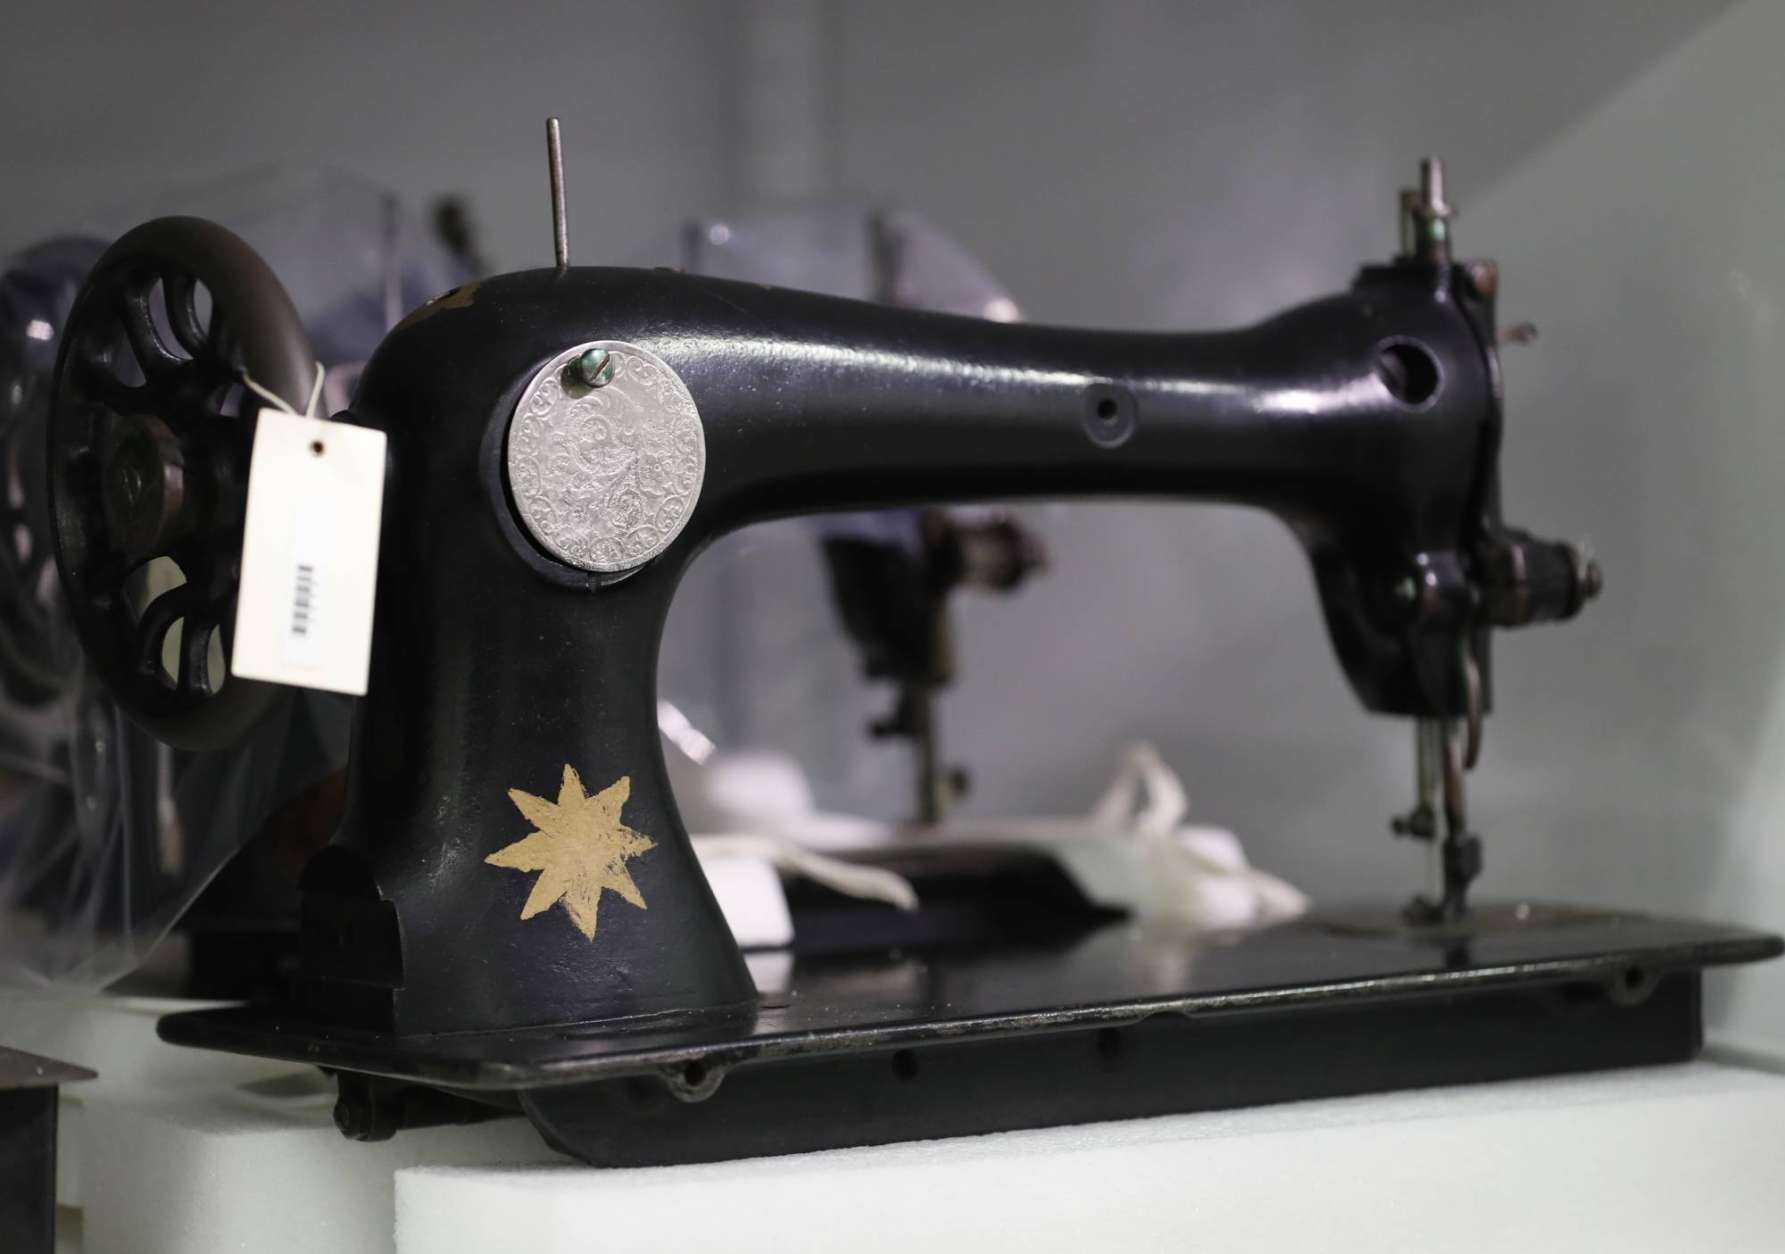 A sewing machine used during the time of the Holocaust is seen in the Personal Artifacts Vault at the U.S. Holocaust Memorial Museum's David and Fela Shapell Family Collections, Conservation and Research Center in Bowie, Md., Monday, April 24, 2017. The Shapell Center is a new state-of-the-art facility that will house the collection of record of the Holocaust. (AP Photo/Carolyn Kaster)